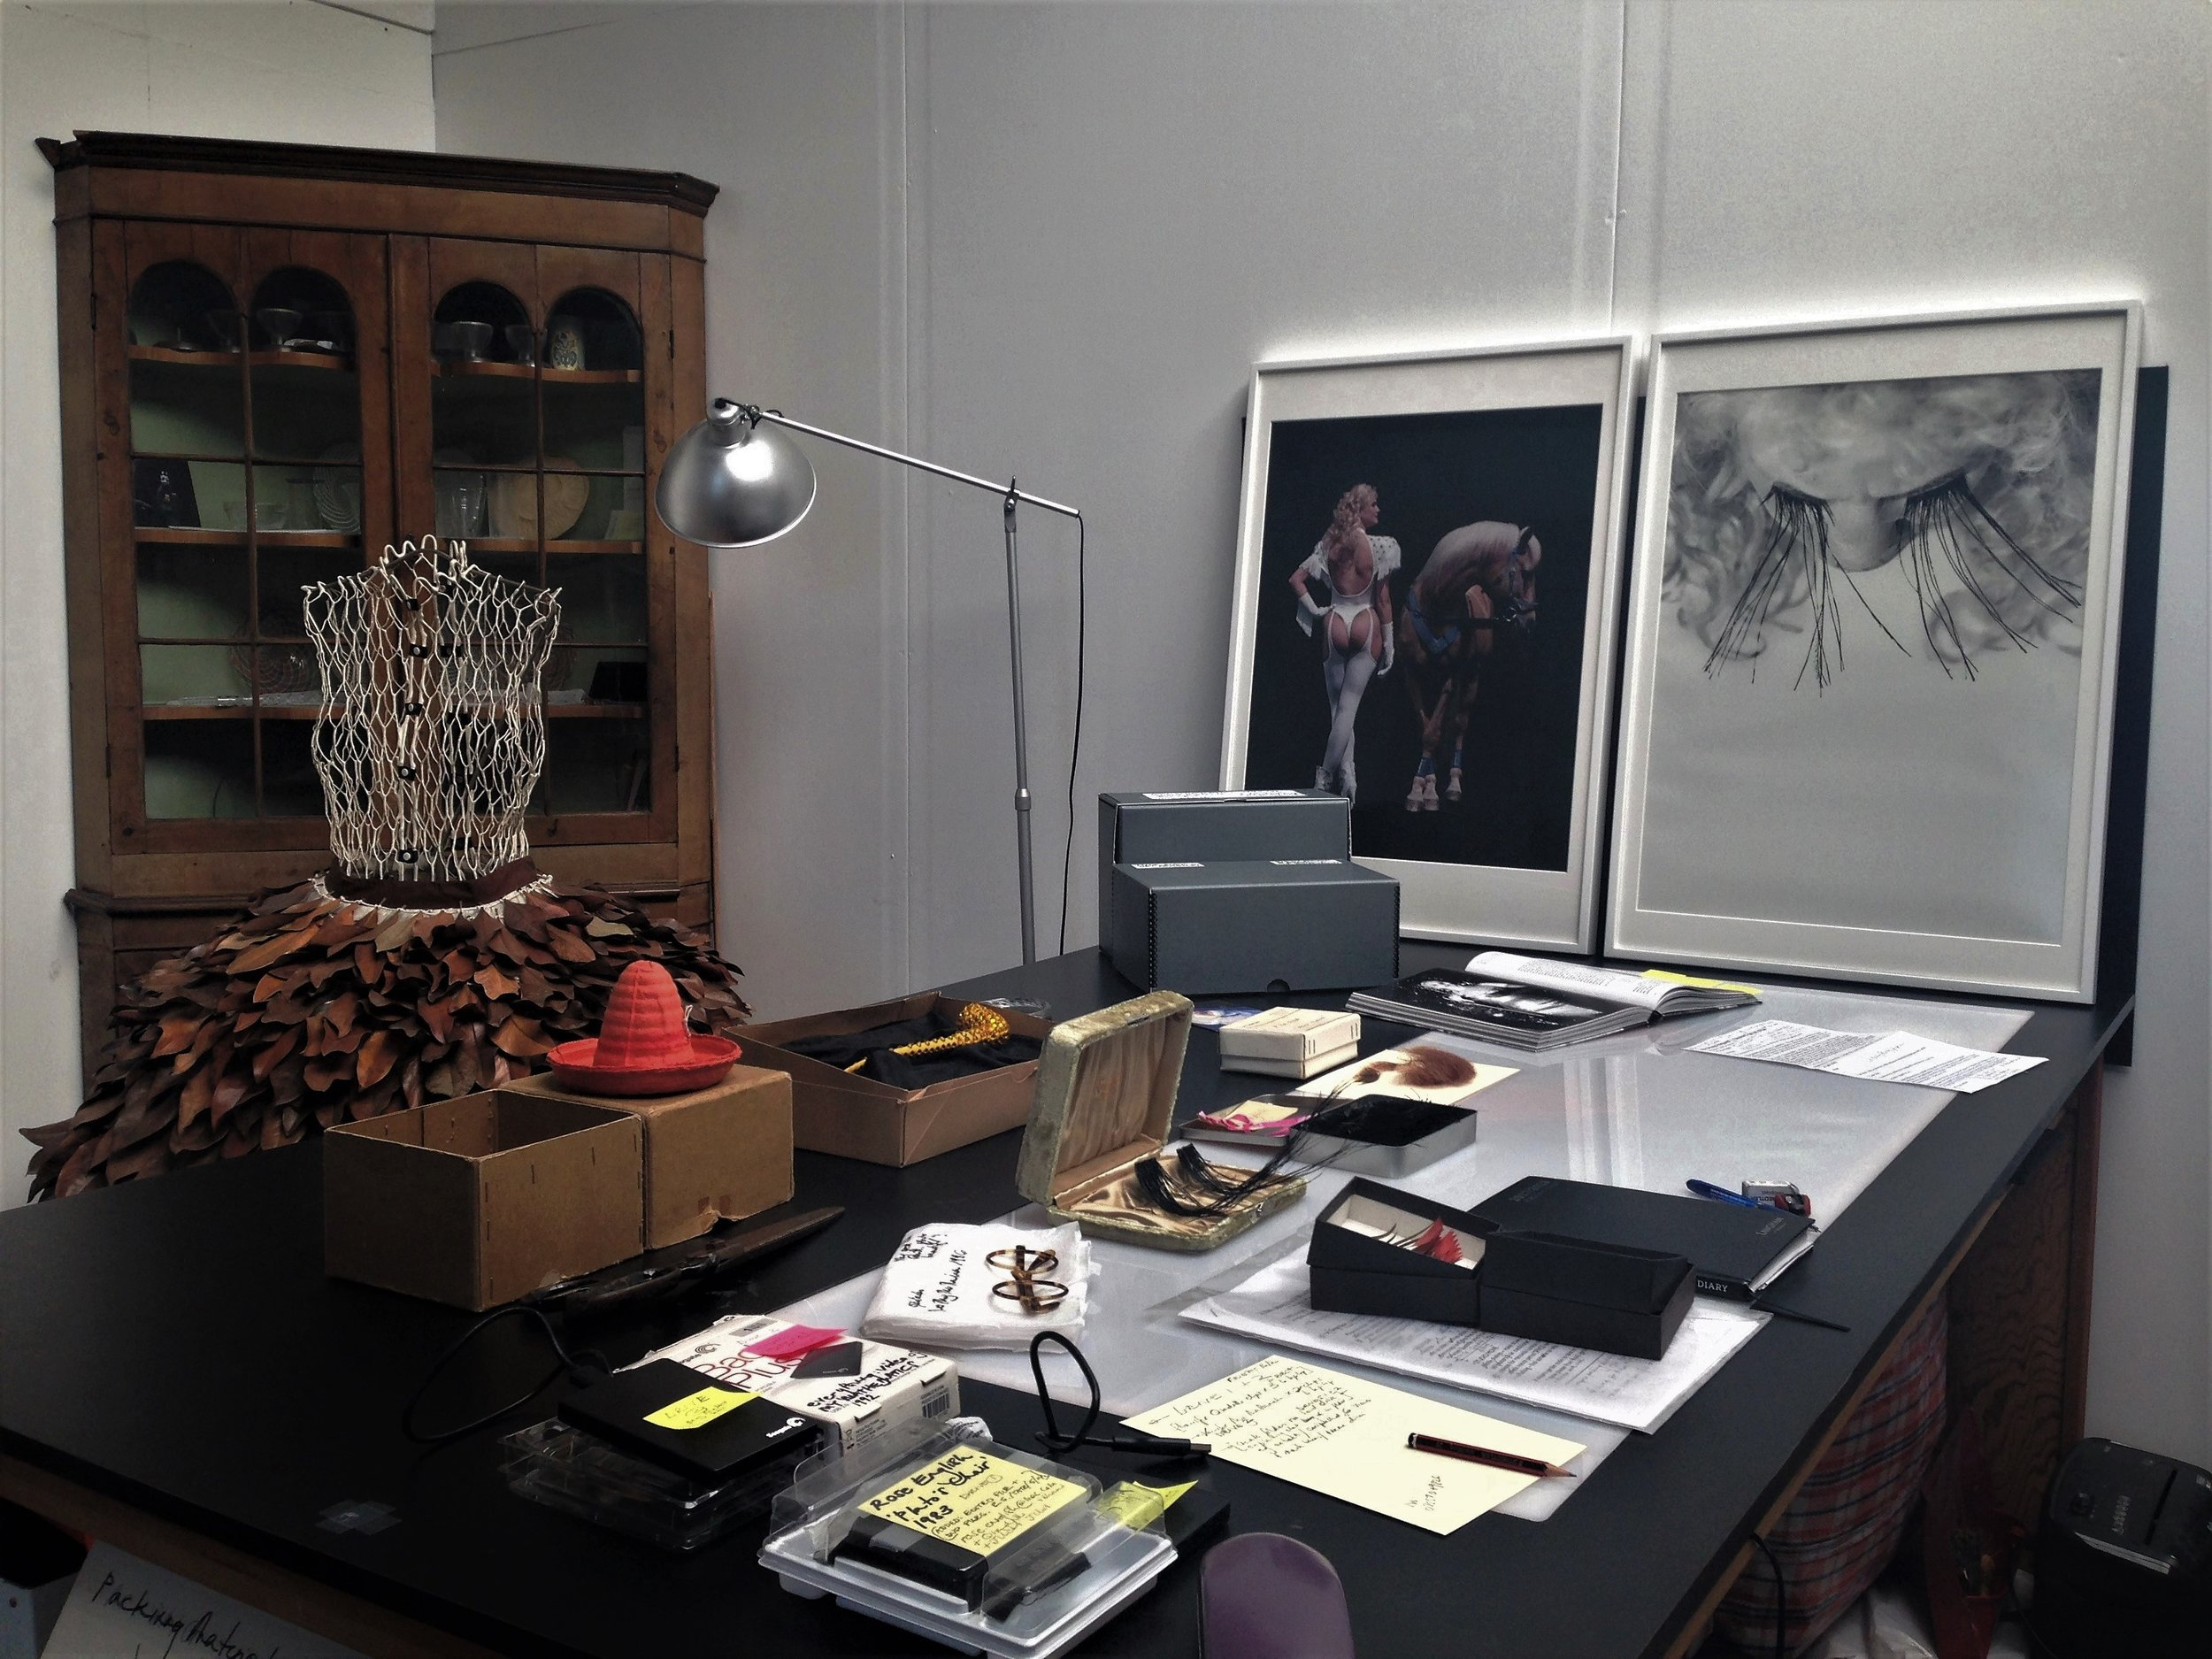 Works from the archive, the studio of Rose English